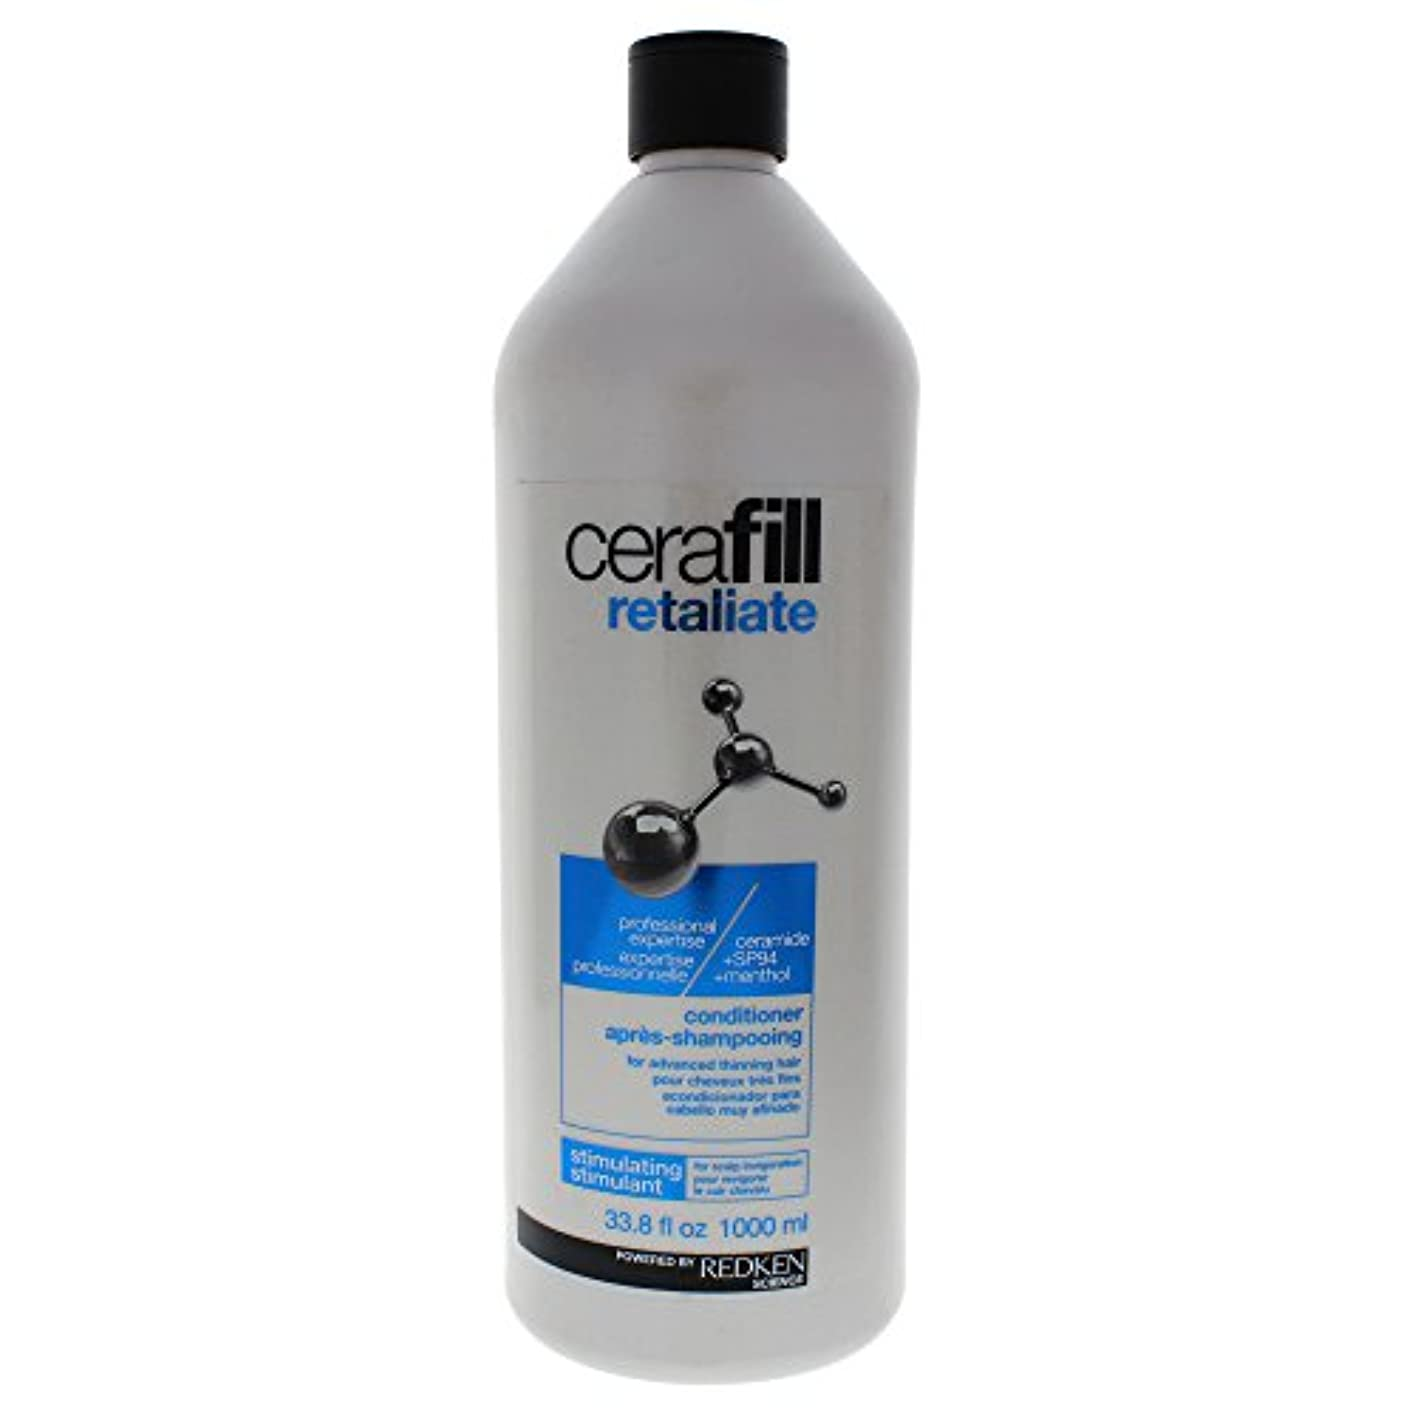 かすれたリゾート剣レッドケン Cerafill Retaliate Stimulating Conditioner (For Advanced Thinning Hair) 1000ml